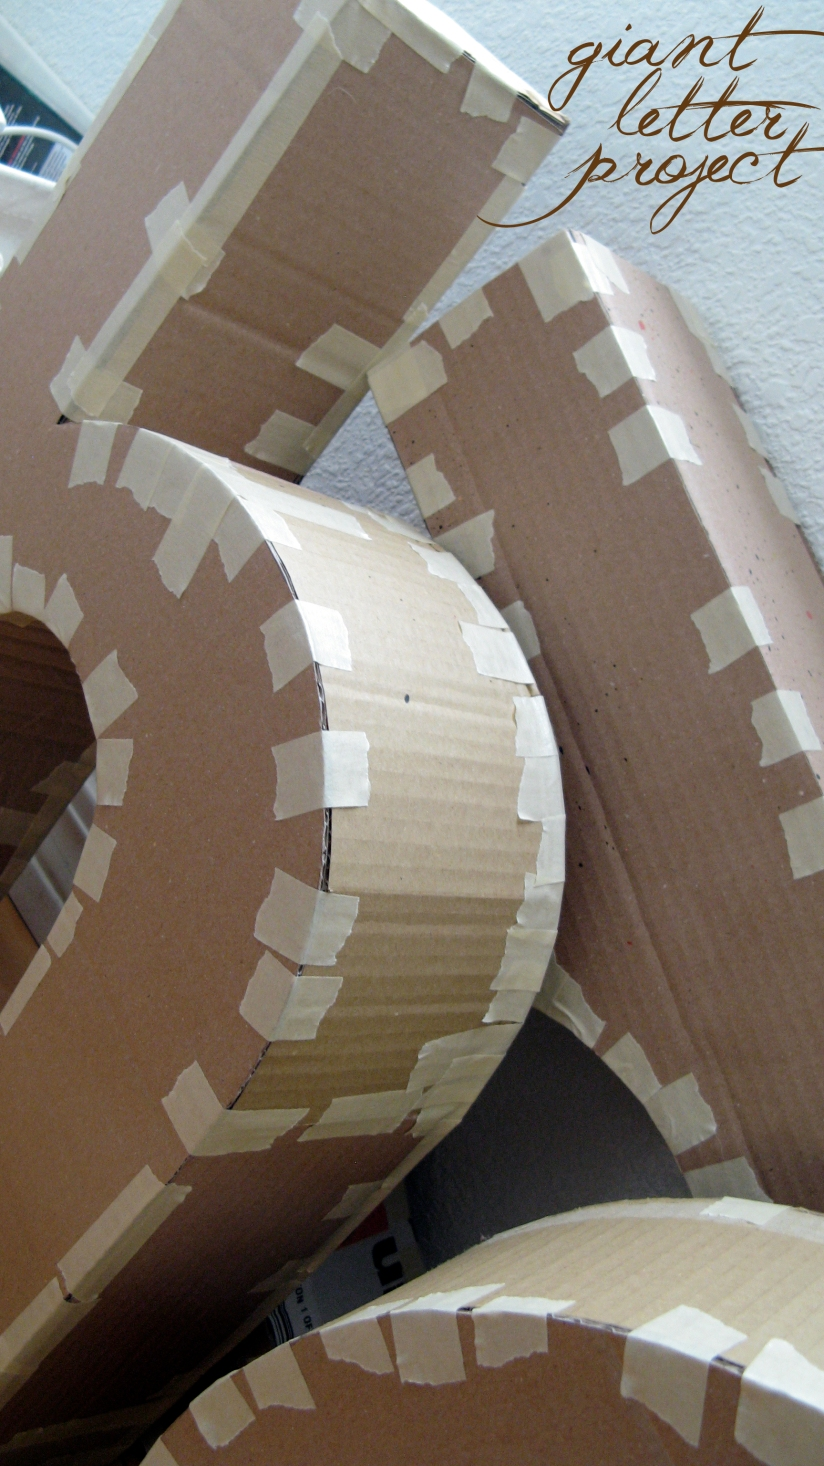 giant cardboard letters in progress - to be used as home decor